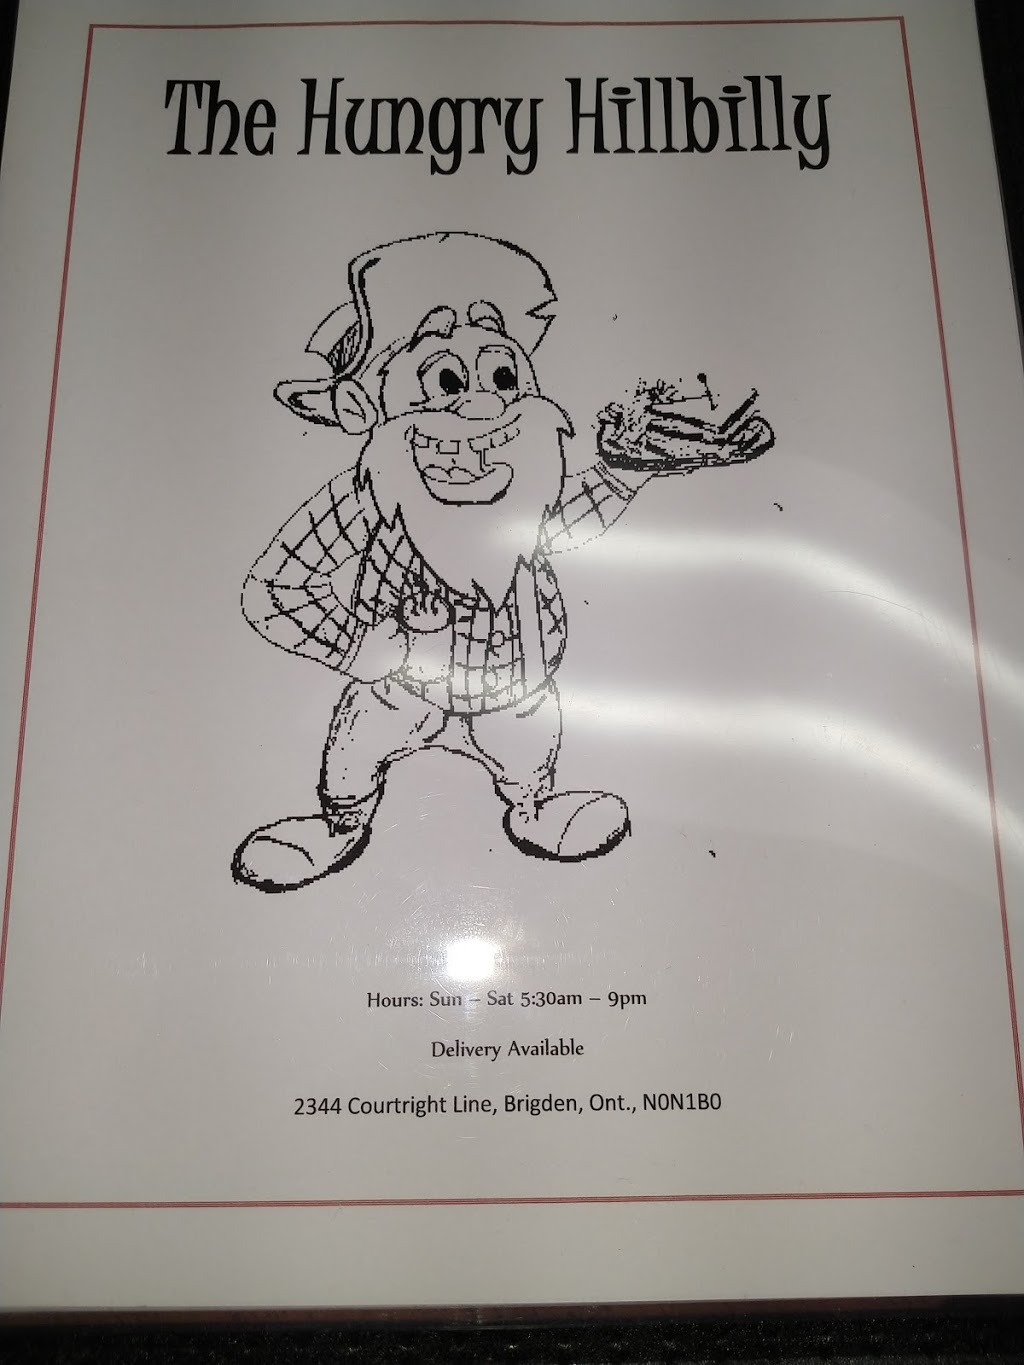 The Hungry Hillbilly | restaurant | 2344 Courtright Line, Brigden, ON N0N 1B0, Canada | 2267782297 OR +1 226-778-2297